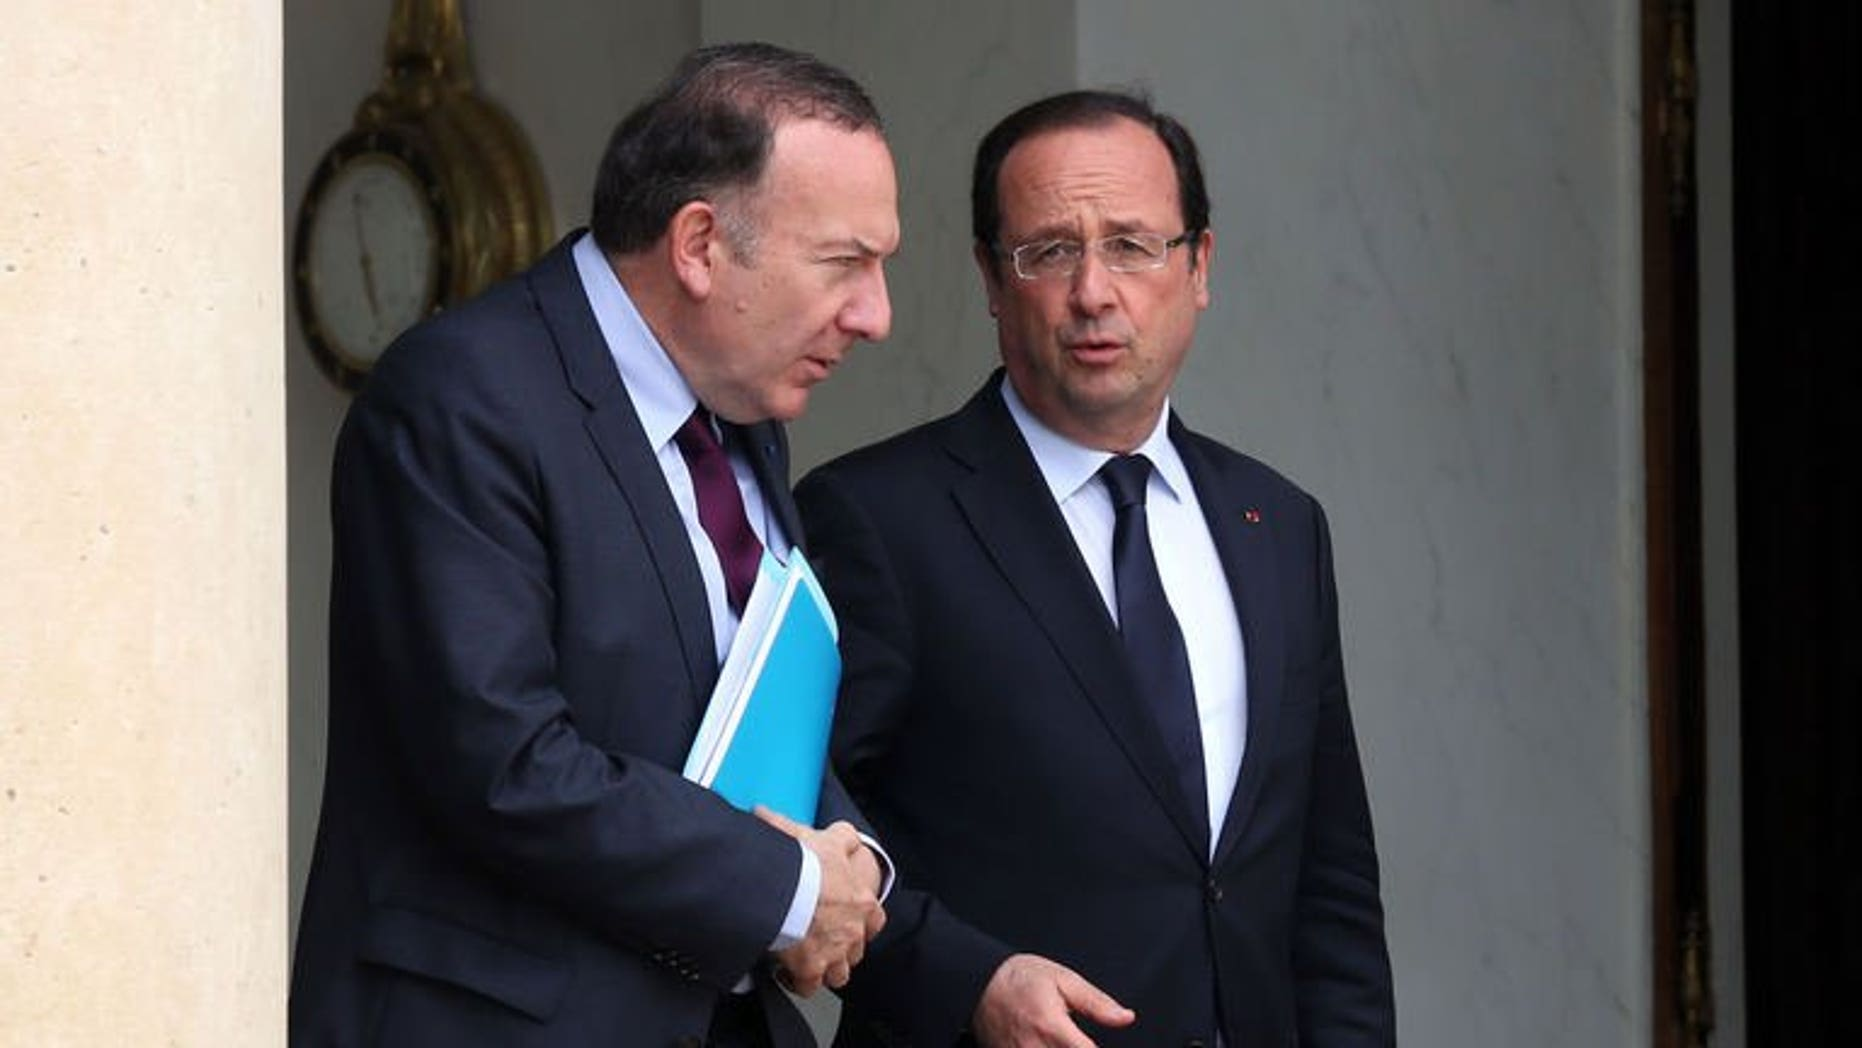 New French employers' association chief Pierre Gattaz (left) talks with French President Francois Hollande as they leave the Elysee presidential palace in Paris, on July 4, 2013. Hollande has arrived in Tunisia, birthplace of the Arab Spring uprisings that is battling political instability and ruled by an Islamist-led government, for talks expected to be dominated by events rocking Egypt.